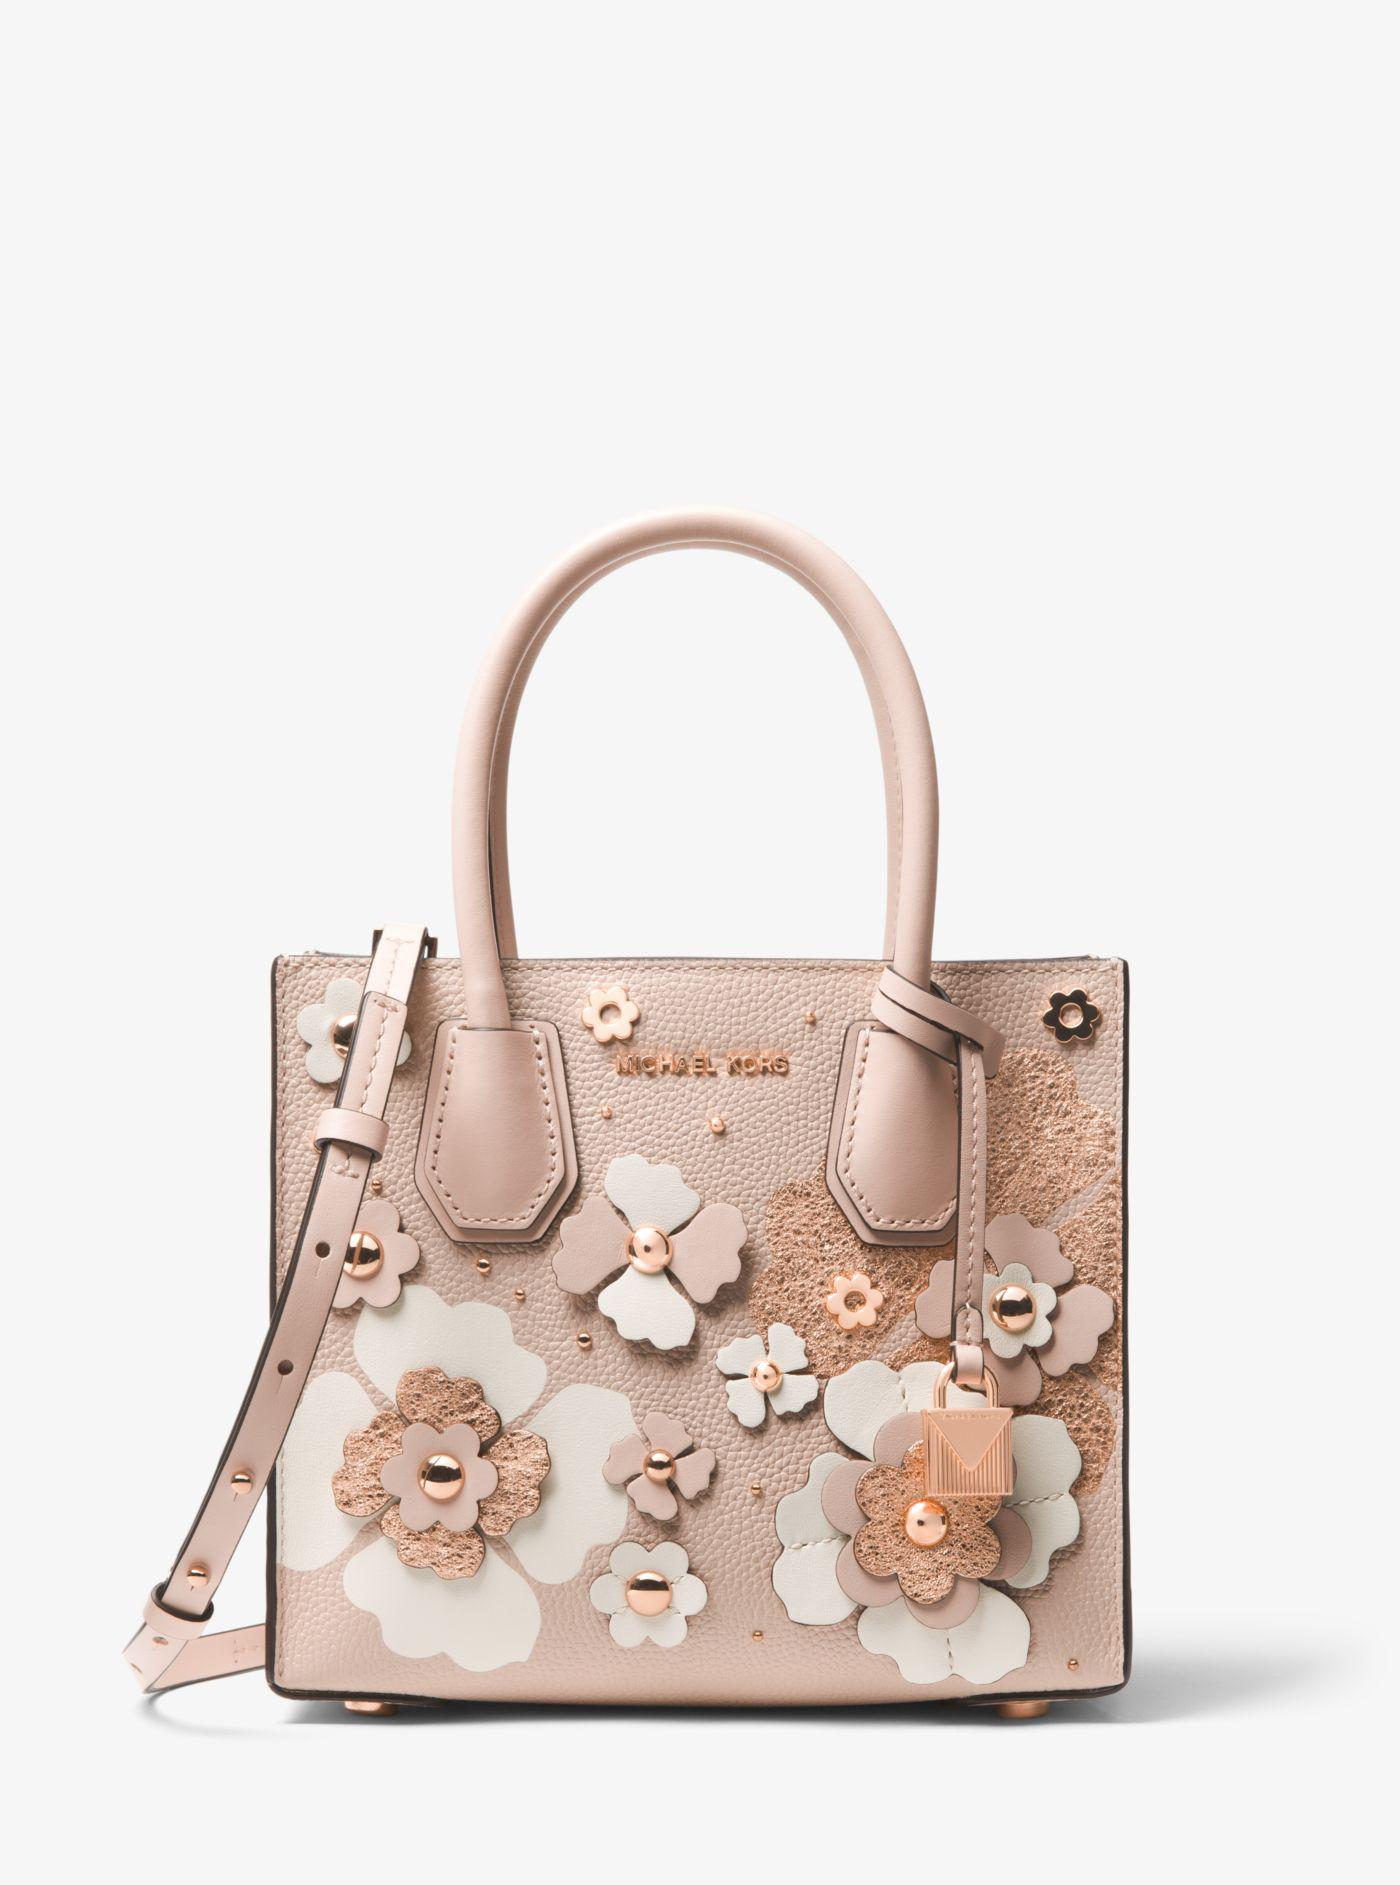 c8e8fc529a90 Lyst - Michael Kors Mercer Floral Embellished Leather Crossbody